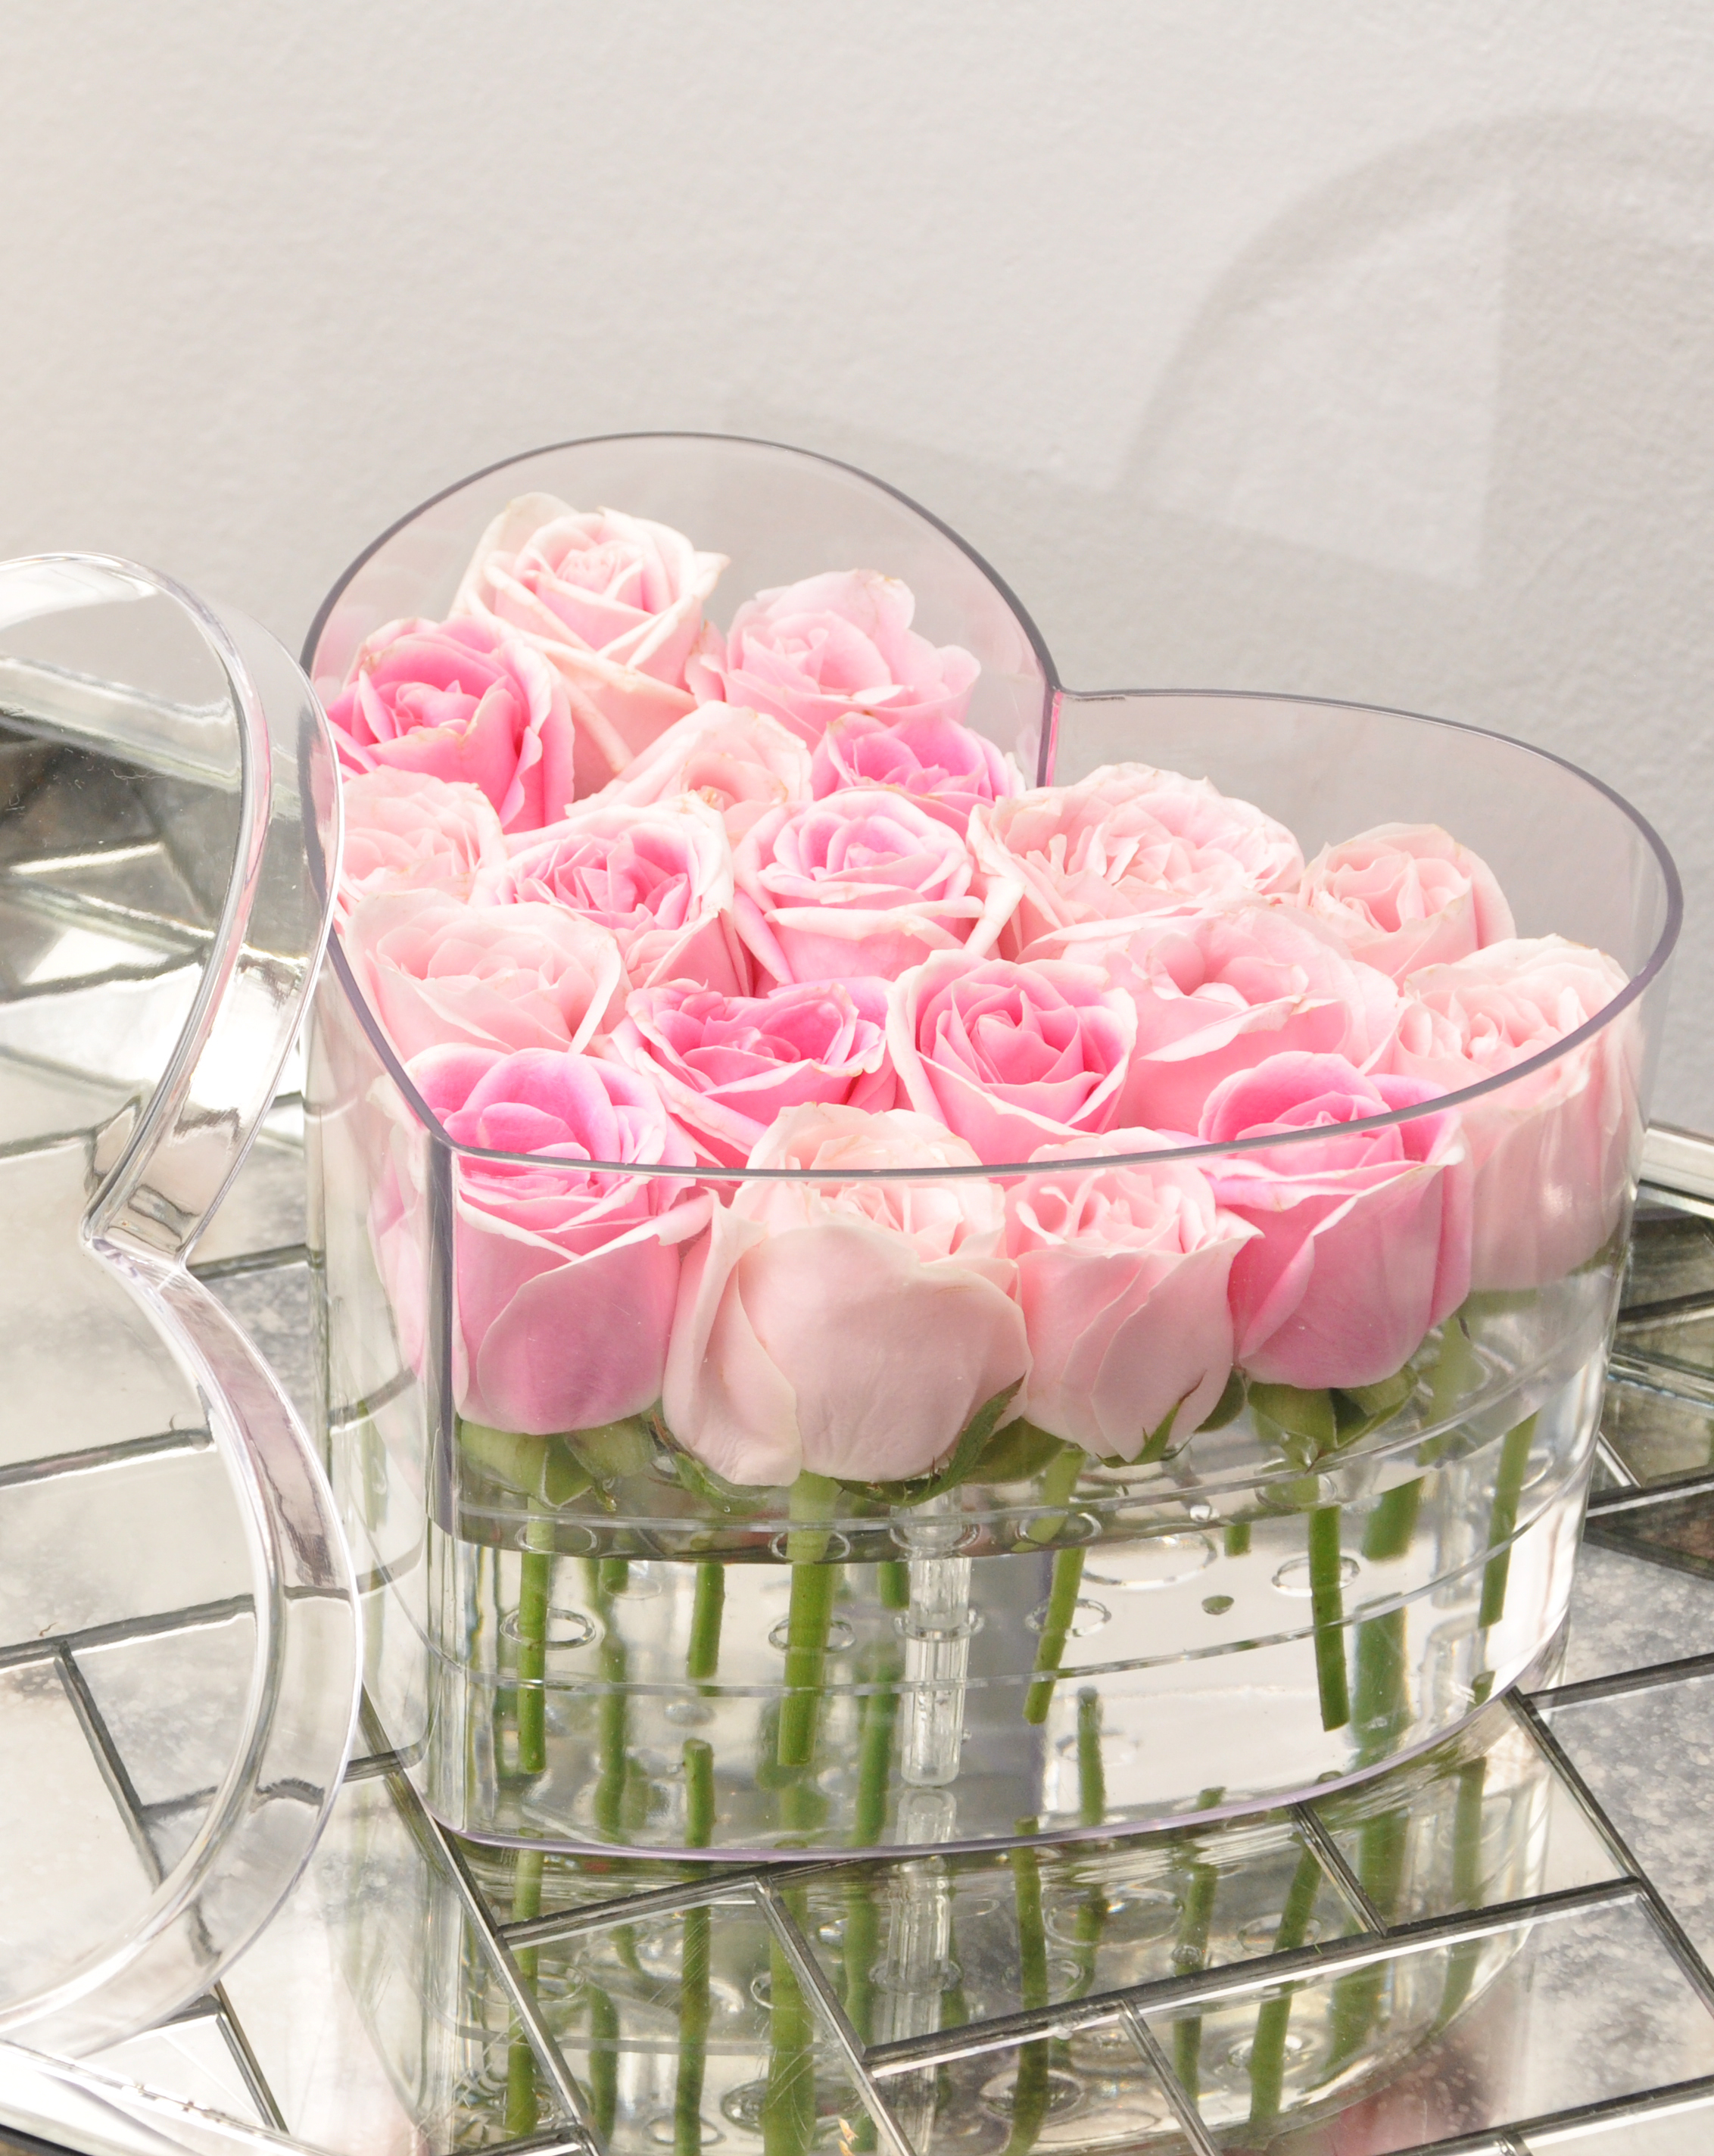 Buy flower KL roses in plexiglass